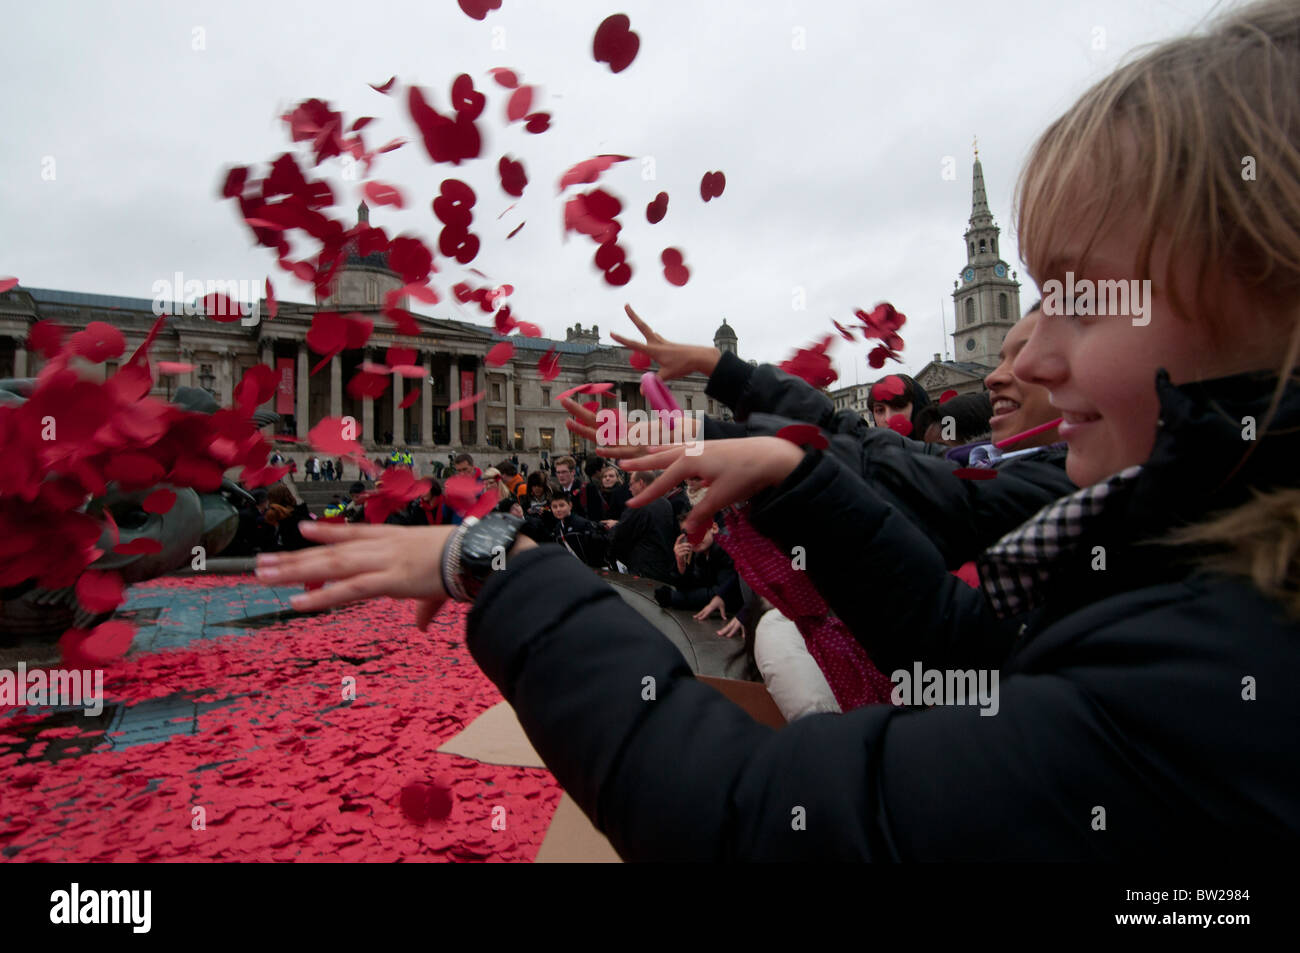 November 11th 2010. Remembrance Day Trafalgar Square.Young girls throwing poppies into the fountains. - Stock Image